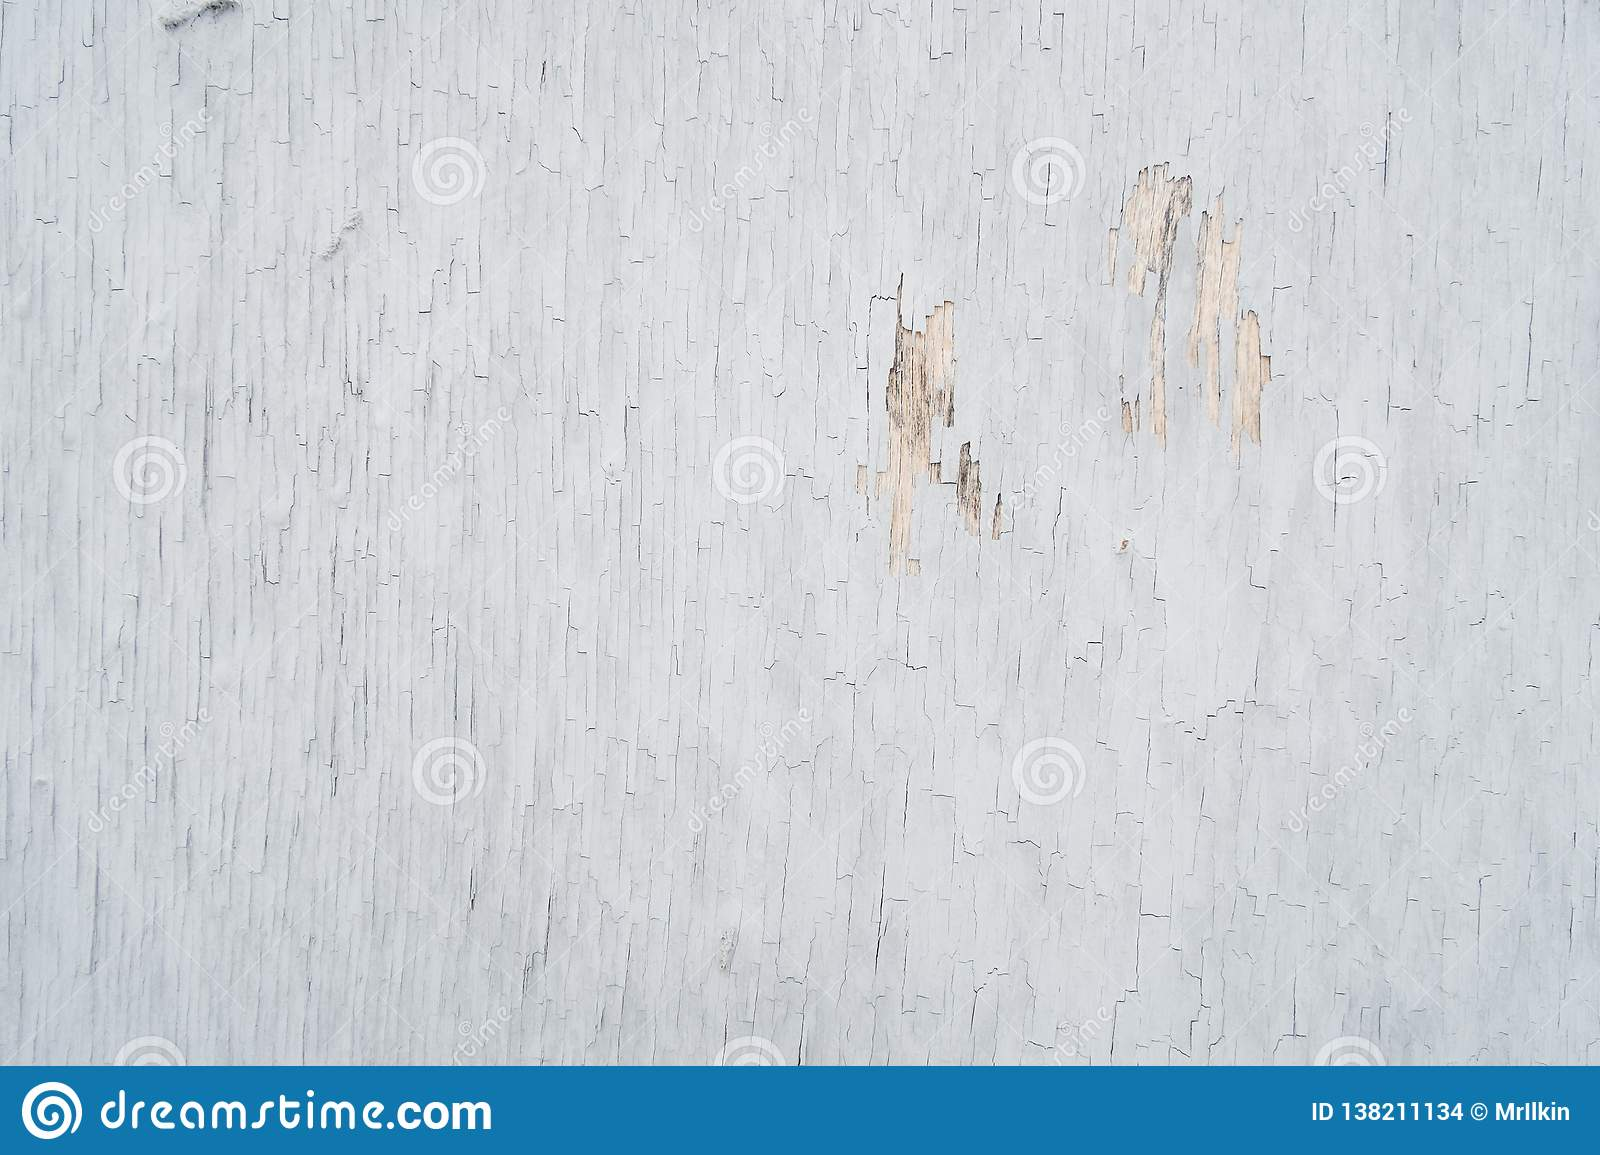 Plywood covered with old peeling paint, for background or texture.